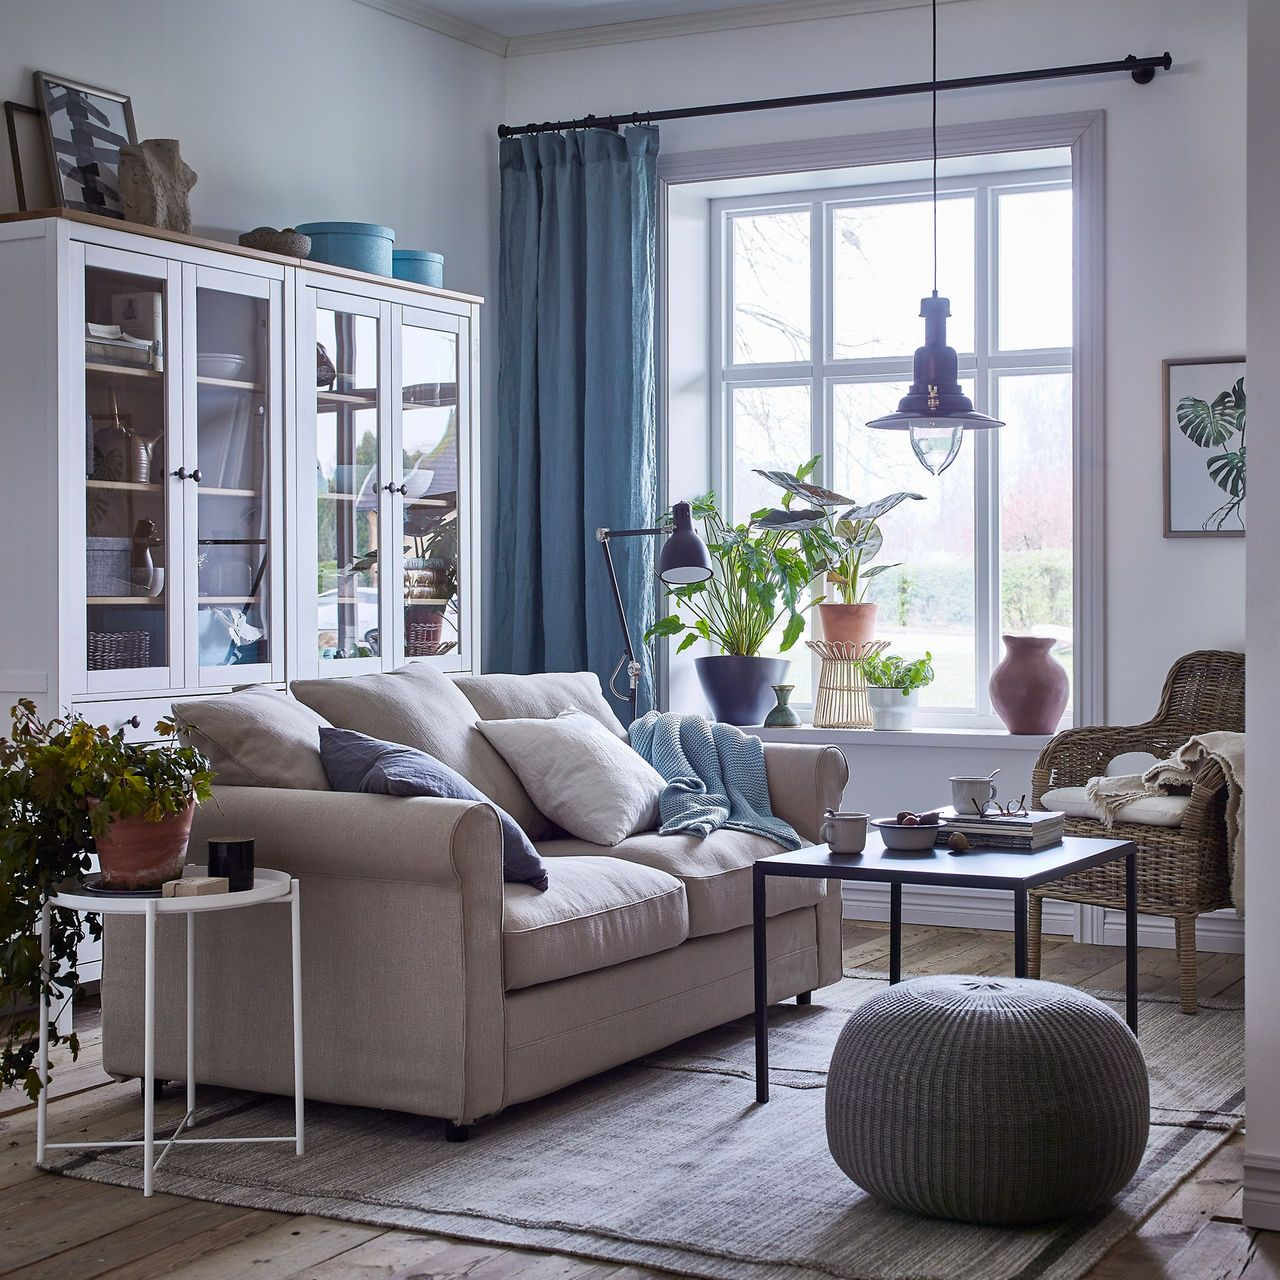 A cosy beige and white living room with blue curtains and a grönlid 2 seat sofa in sporda natural beside a rattan chair and glass storage cabinets